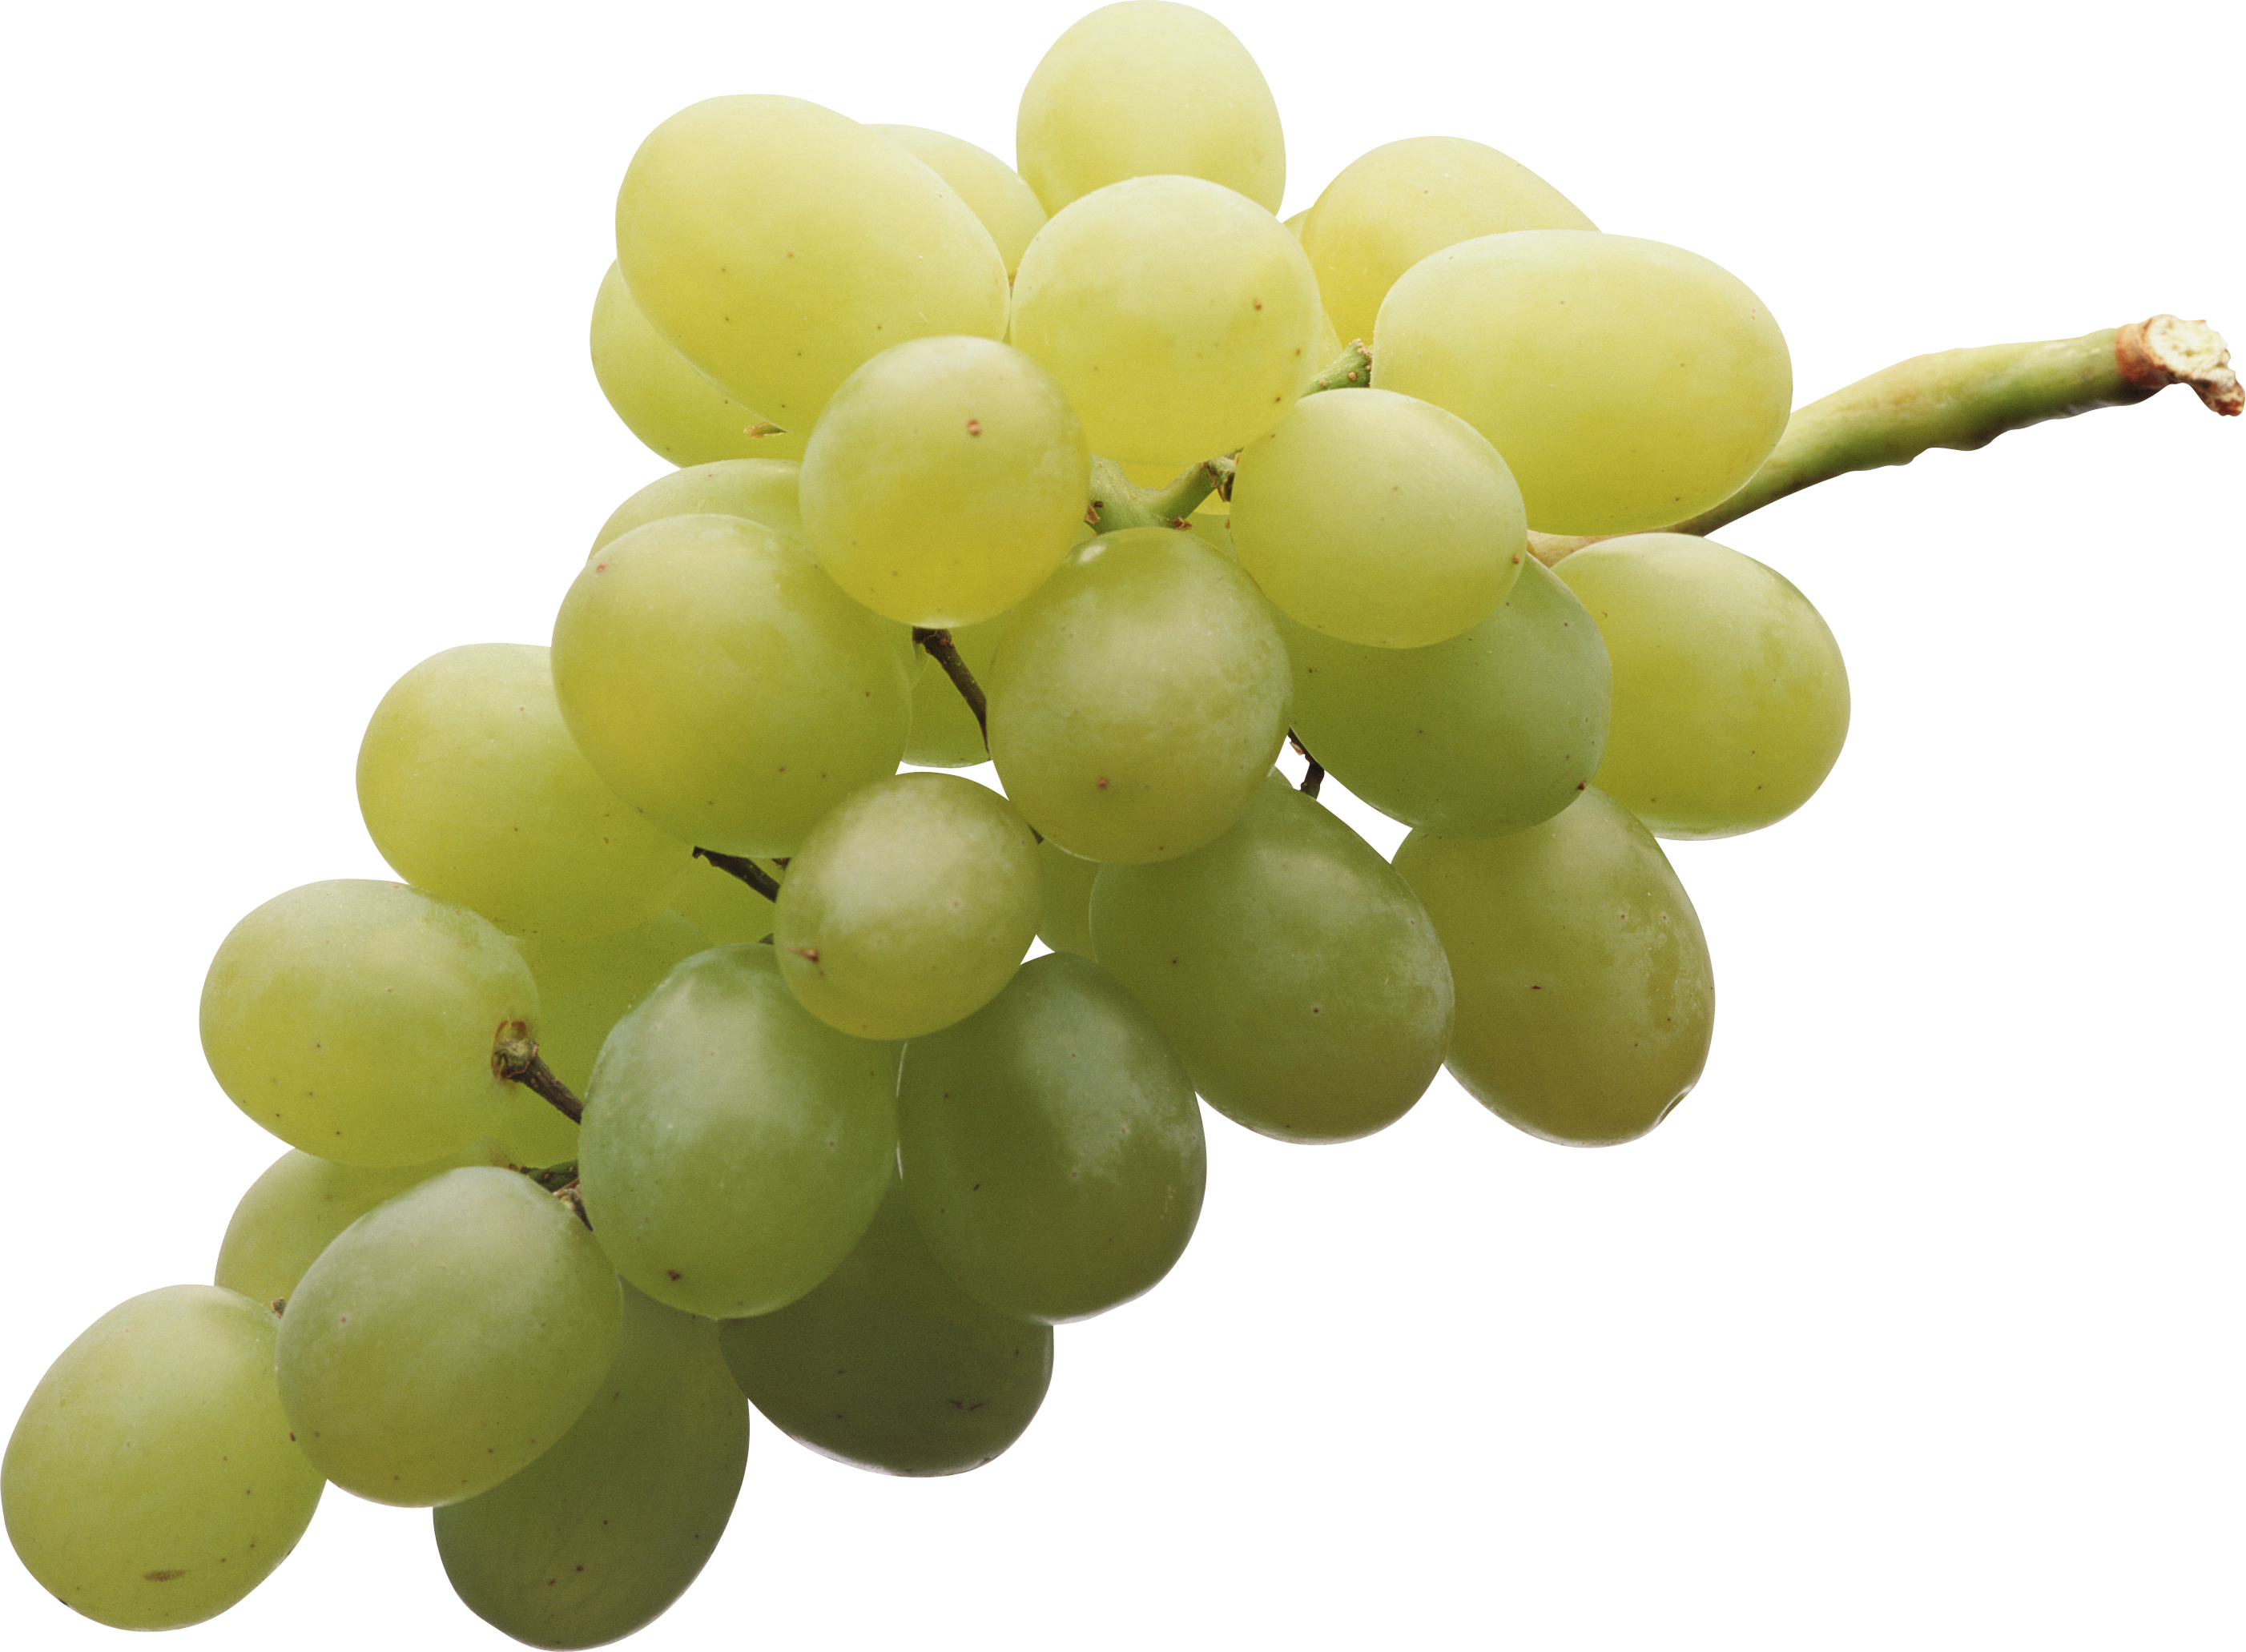 Grape transparent green. Grapes png image purepng